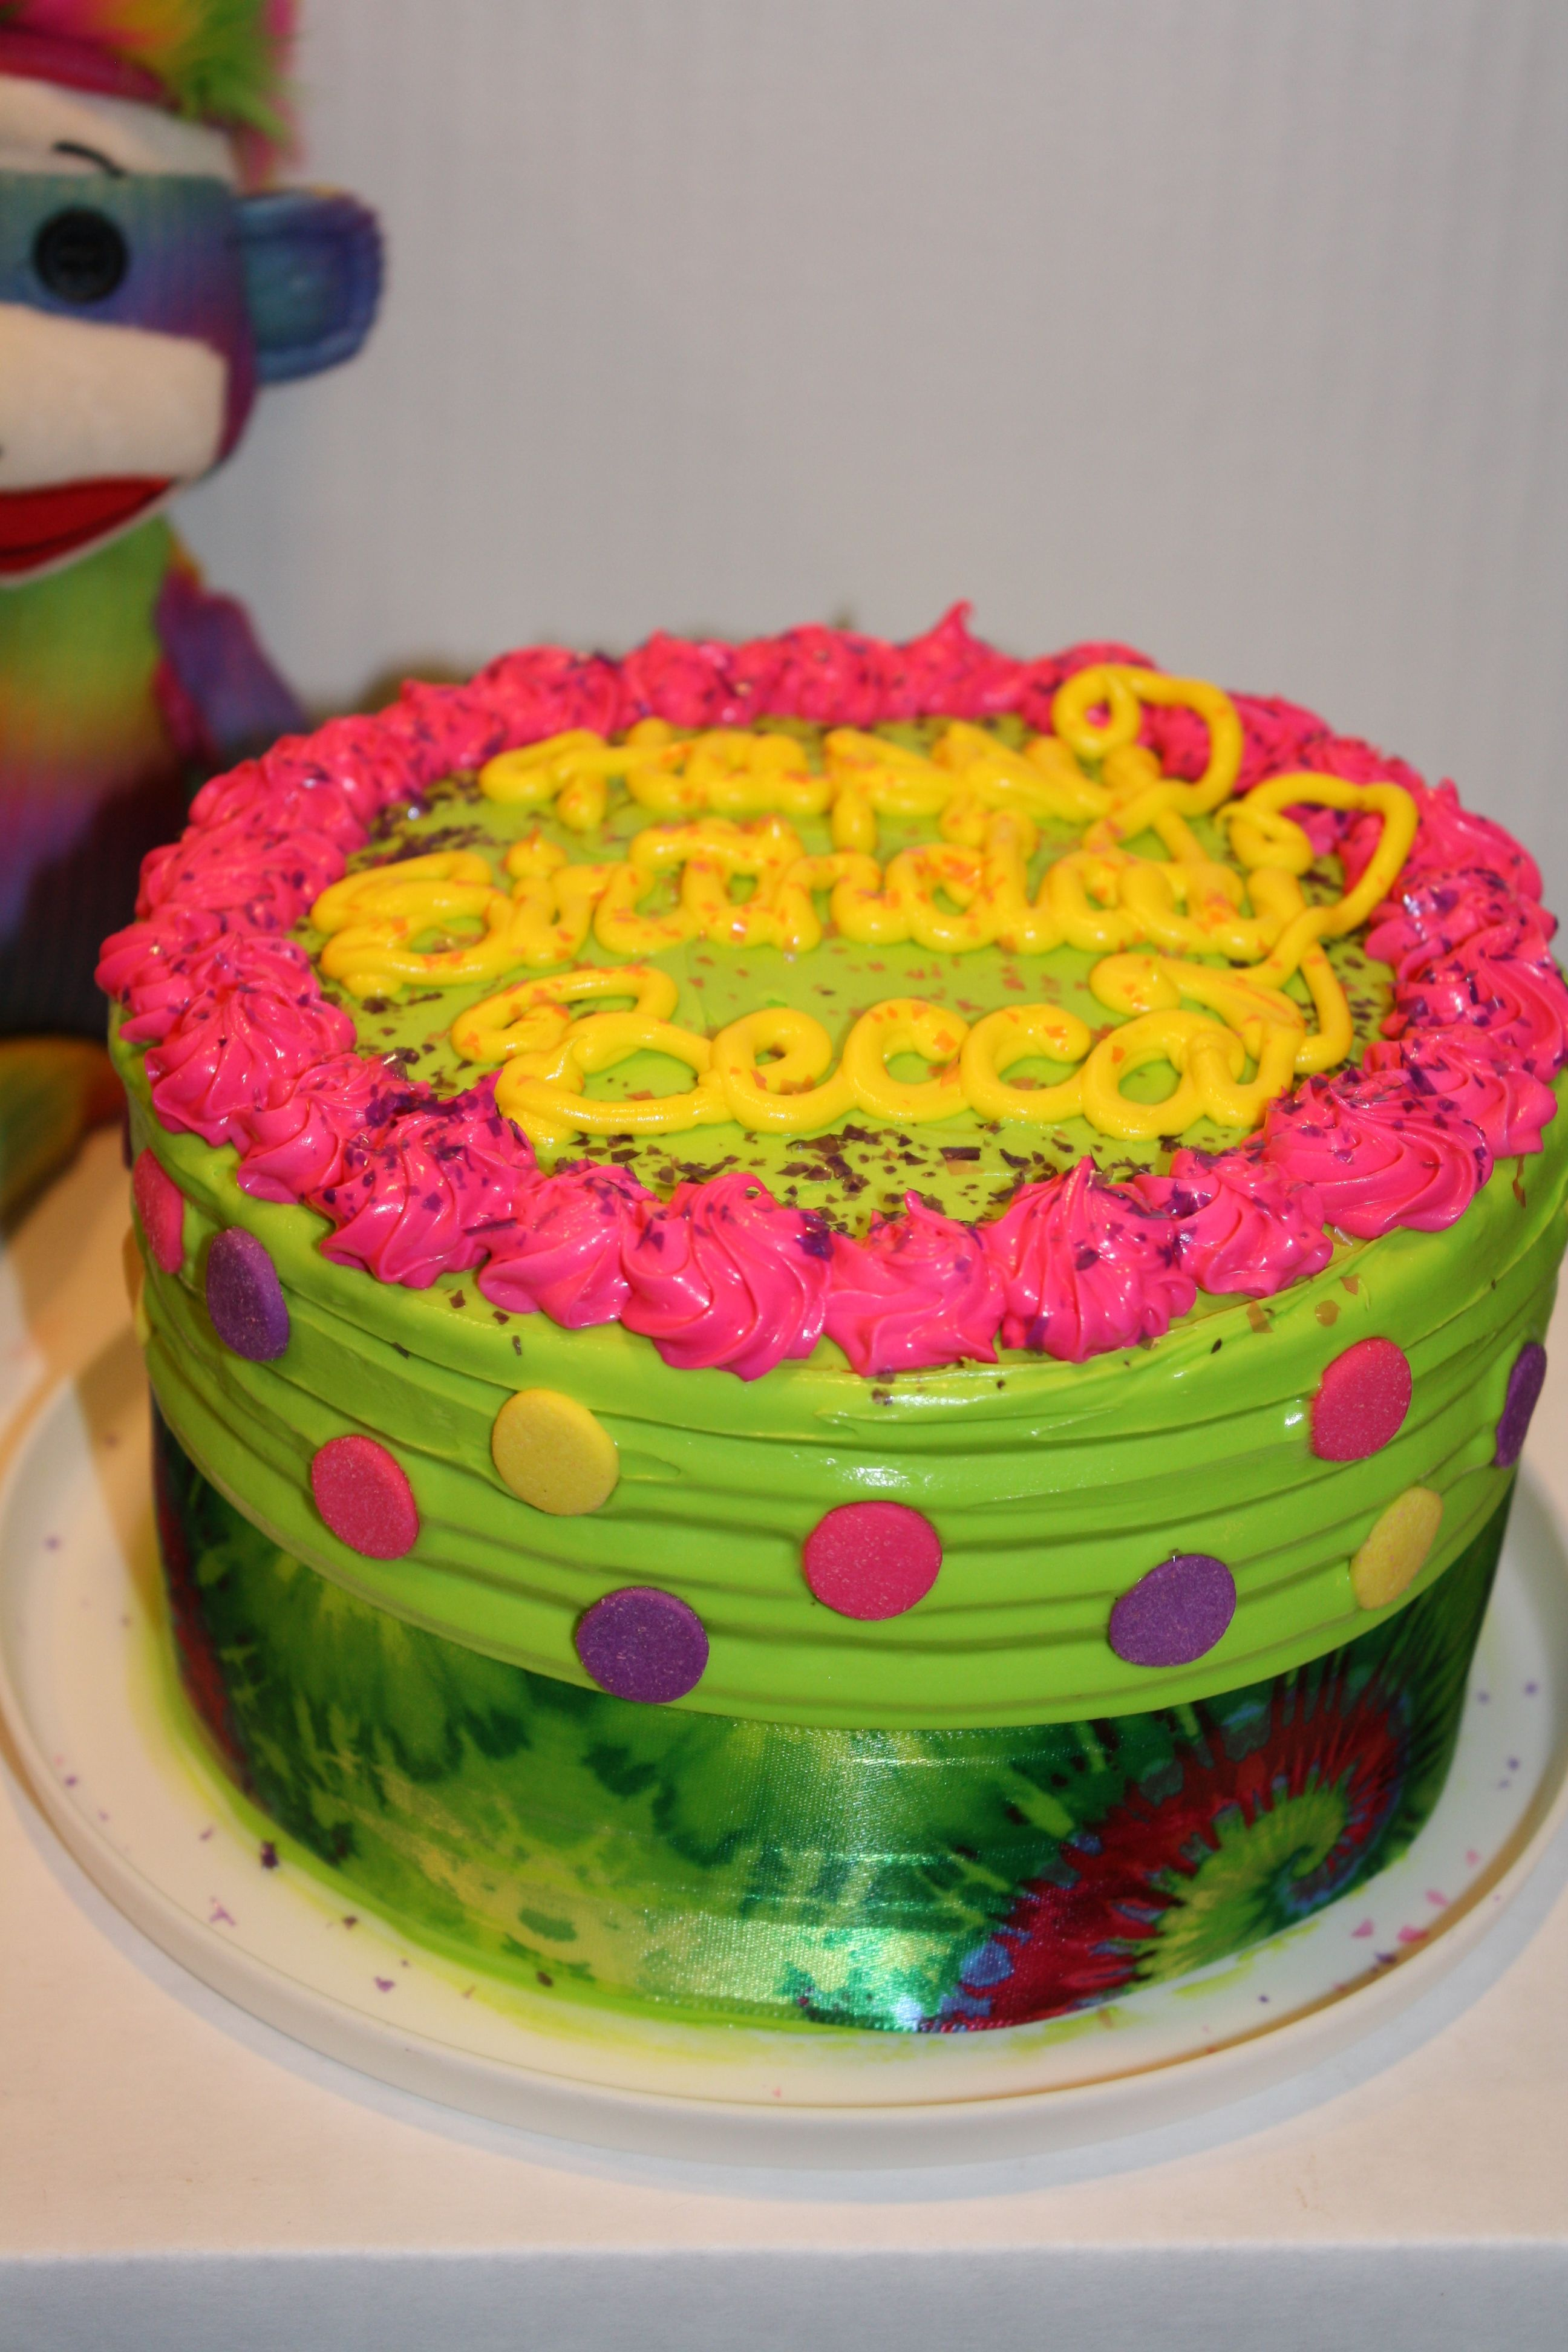 Neon cake for a preteen girlinspired by a sock monkeyby